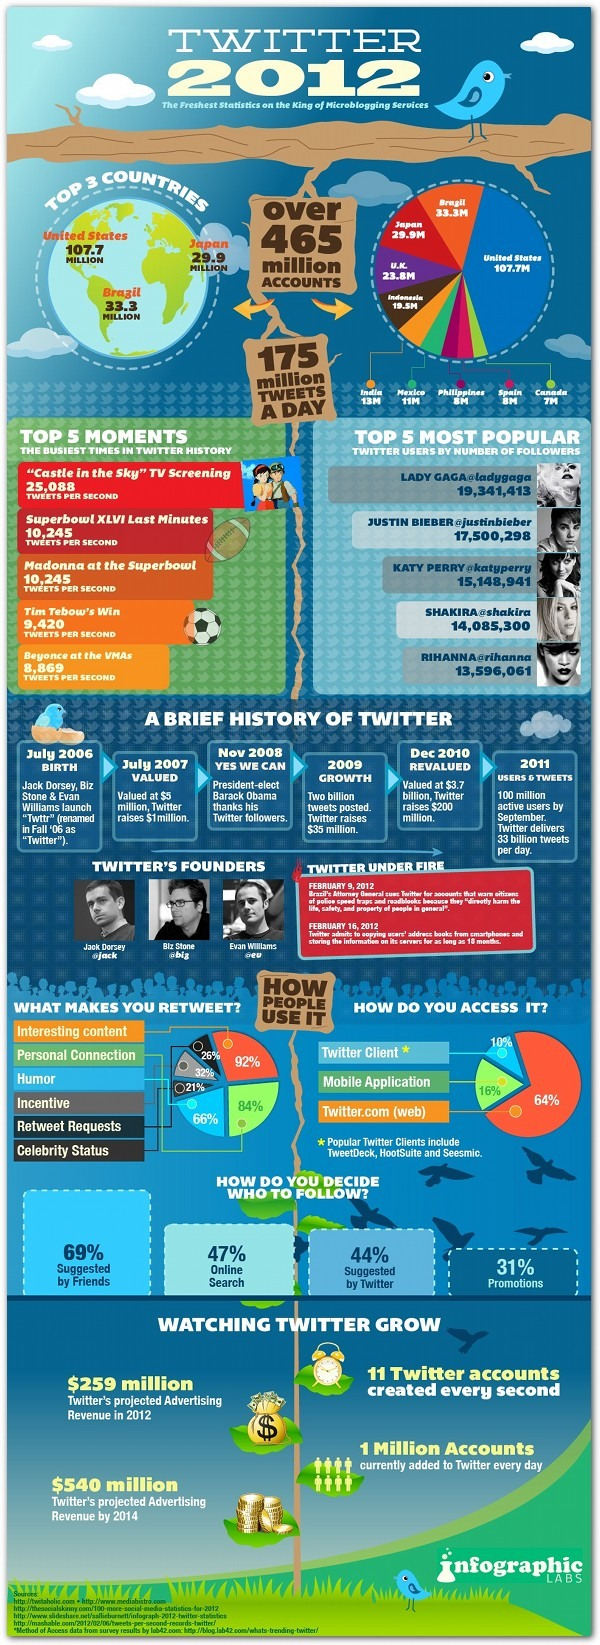 Twitter 2012: The Latest Stats (via PR Daily)